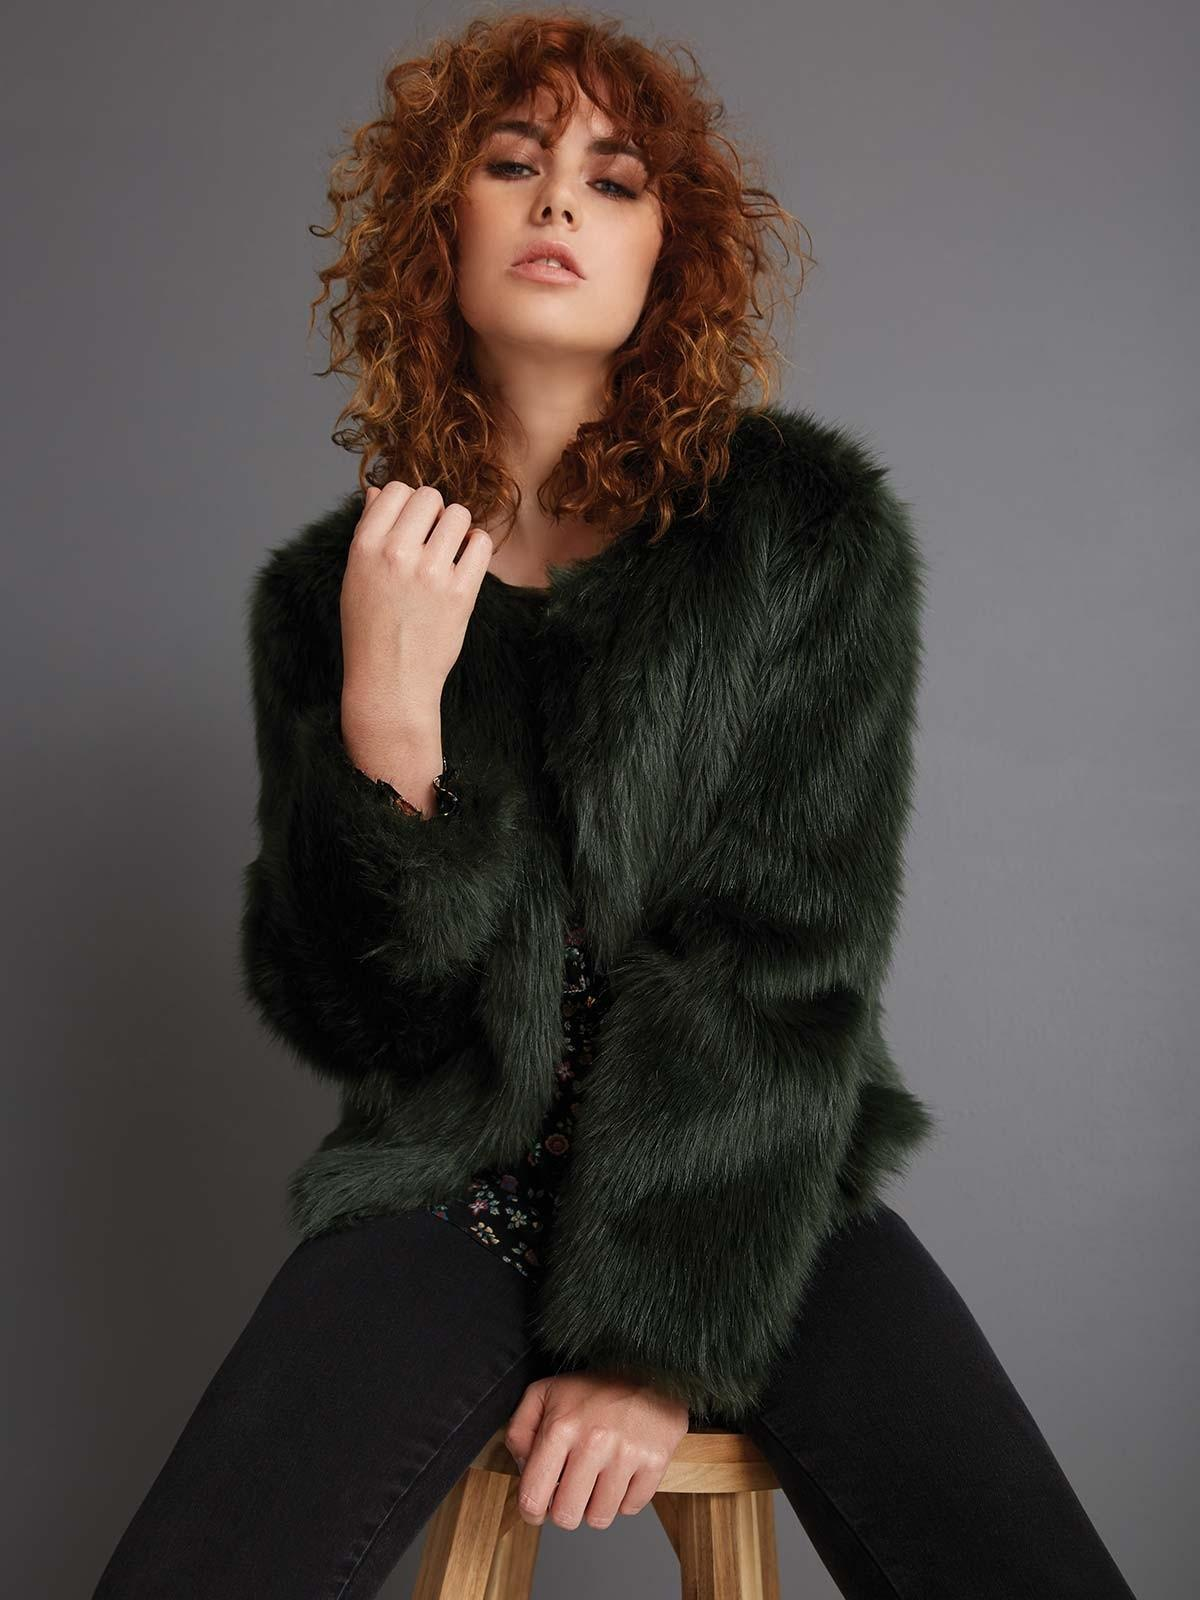 Faux fur will ensure that your winter coat is warm as well as chic.